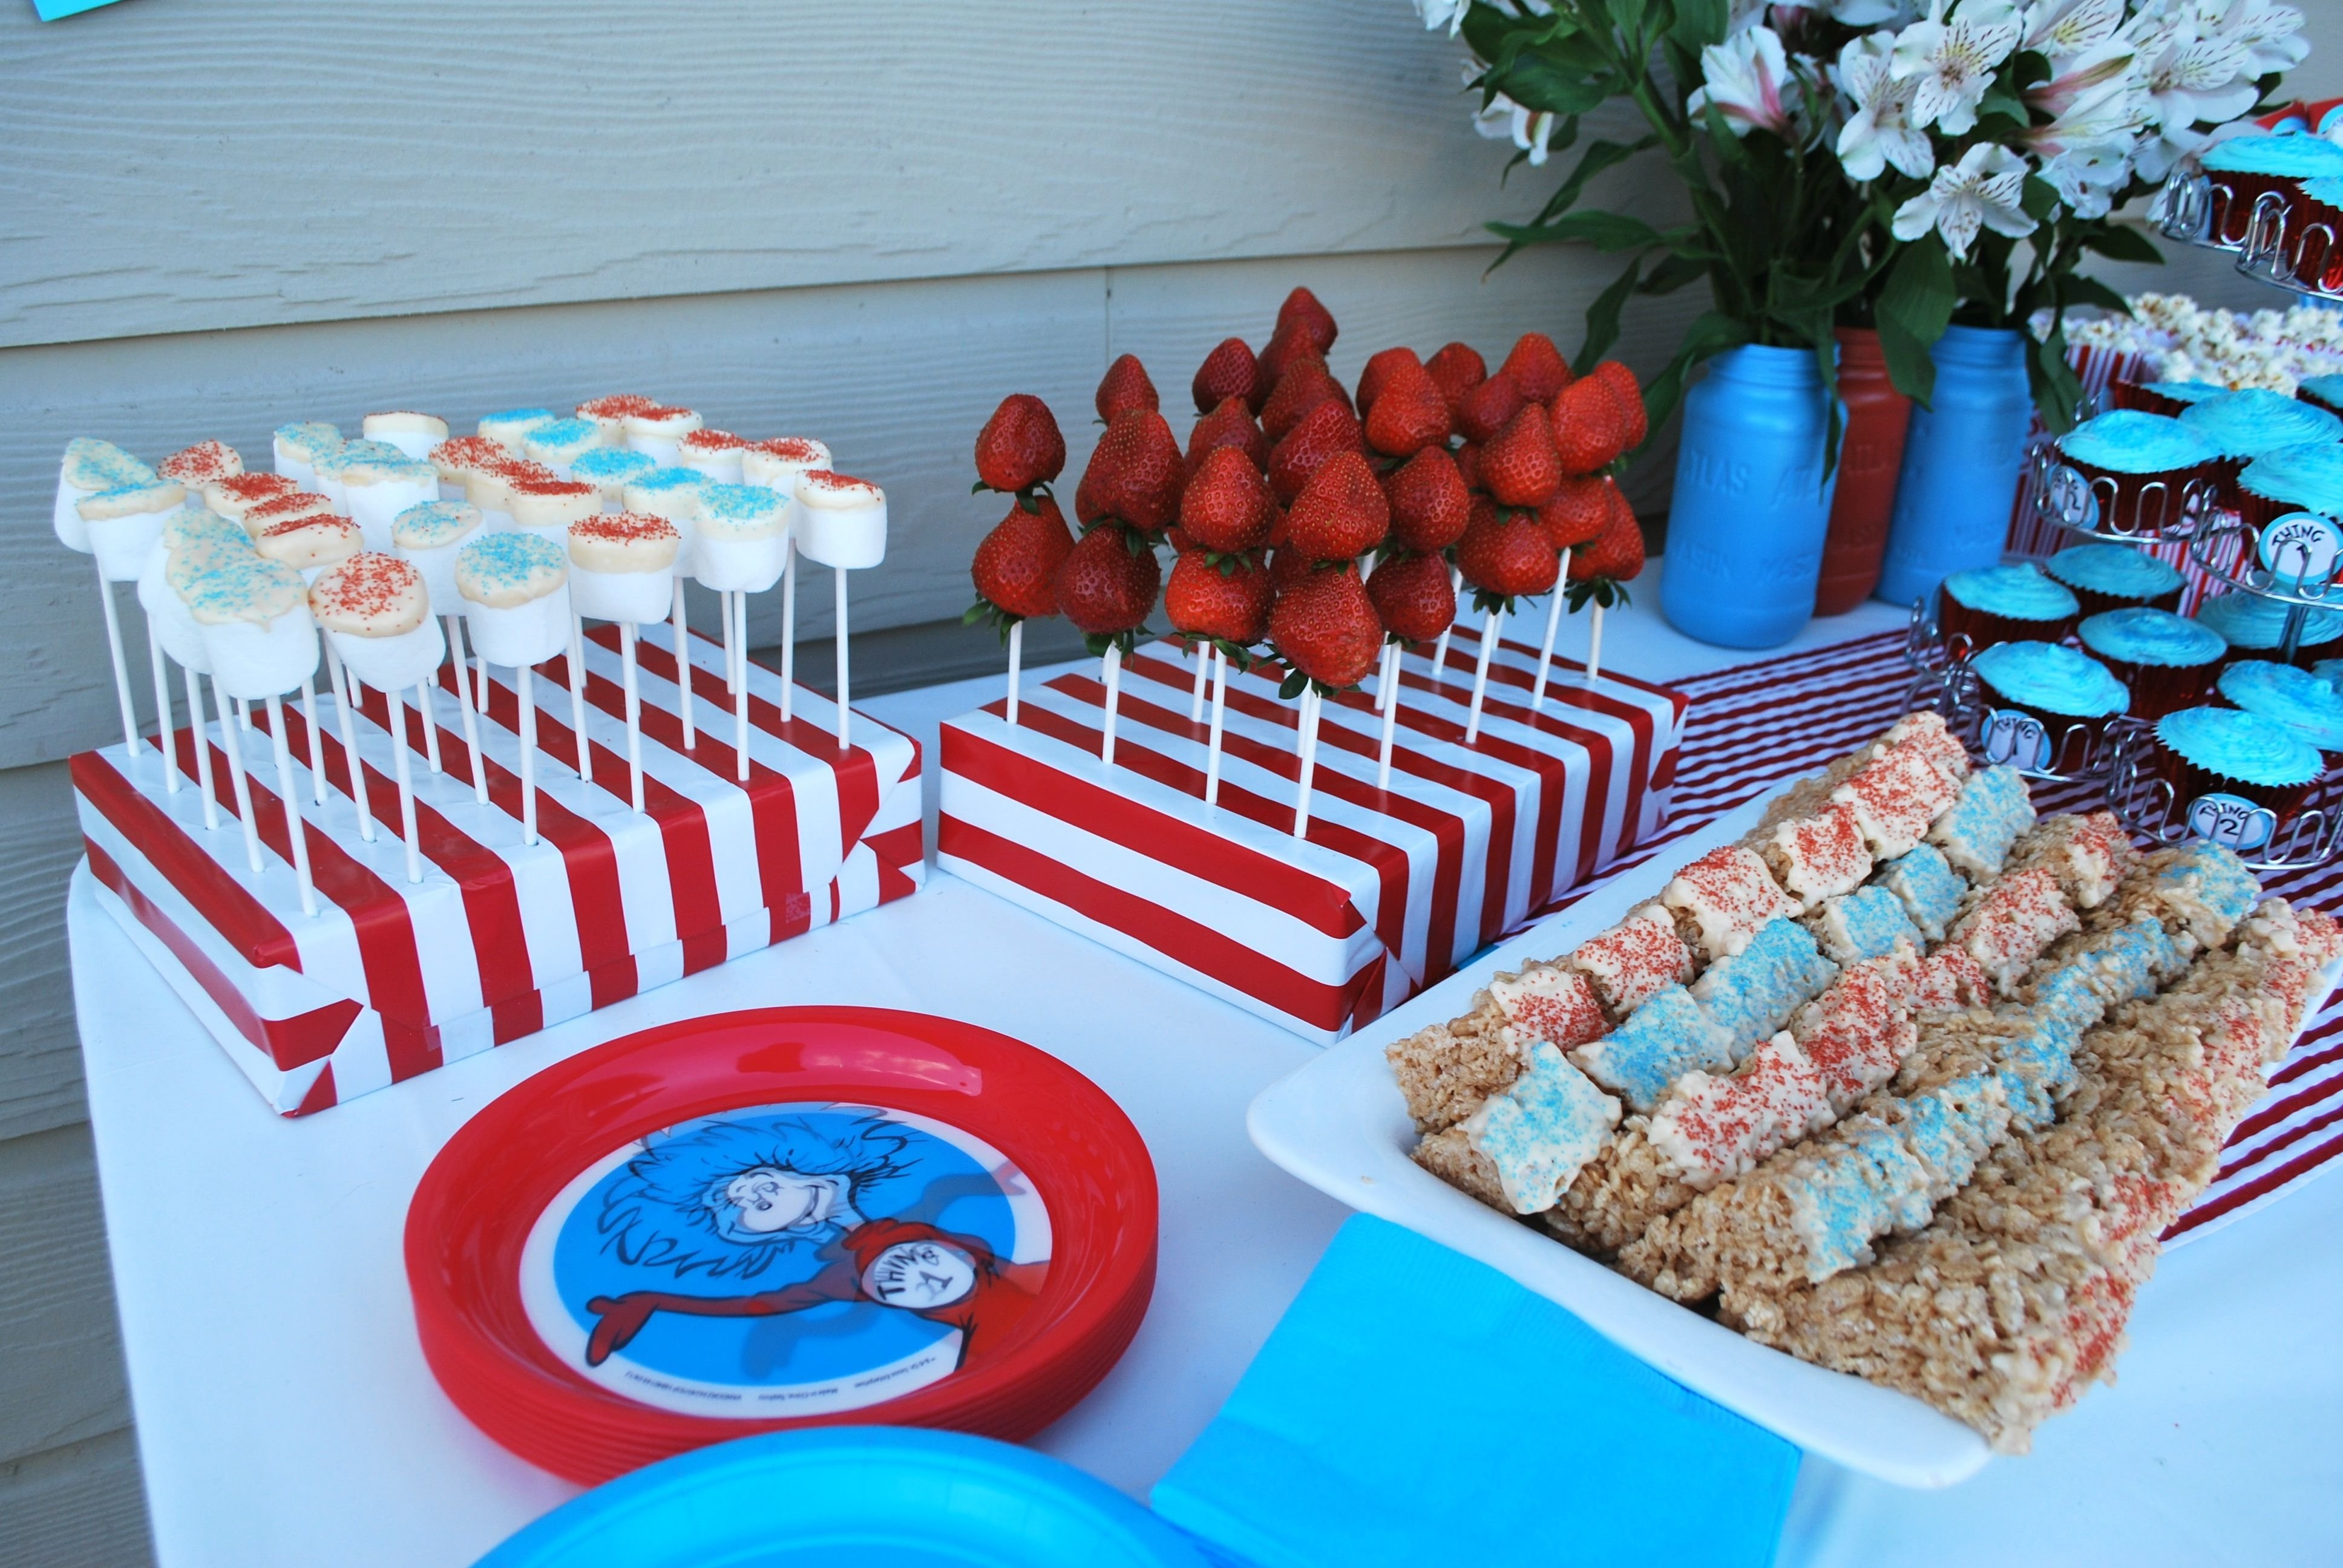 10 Trendy Thing 1 And Thing 2 Party Ideas thing one thing two birthday ideas thing 1 and thing 2 birthday 3 2020